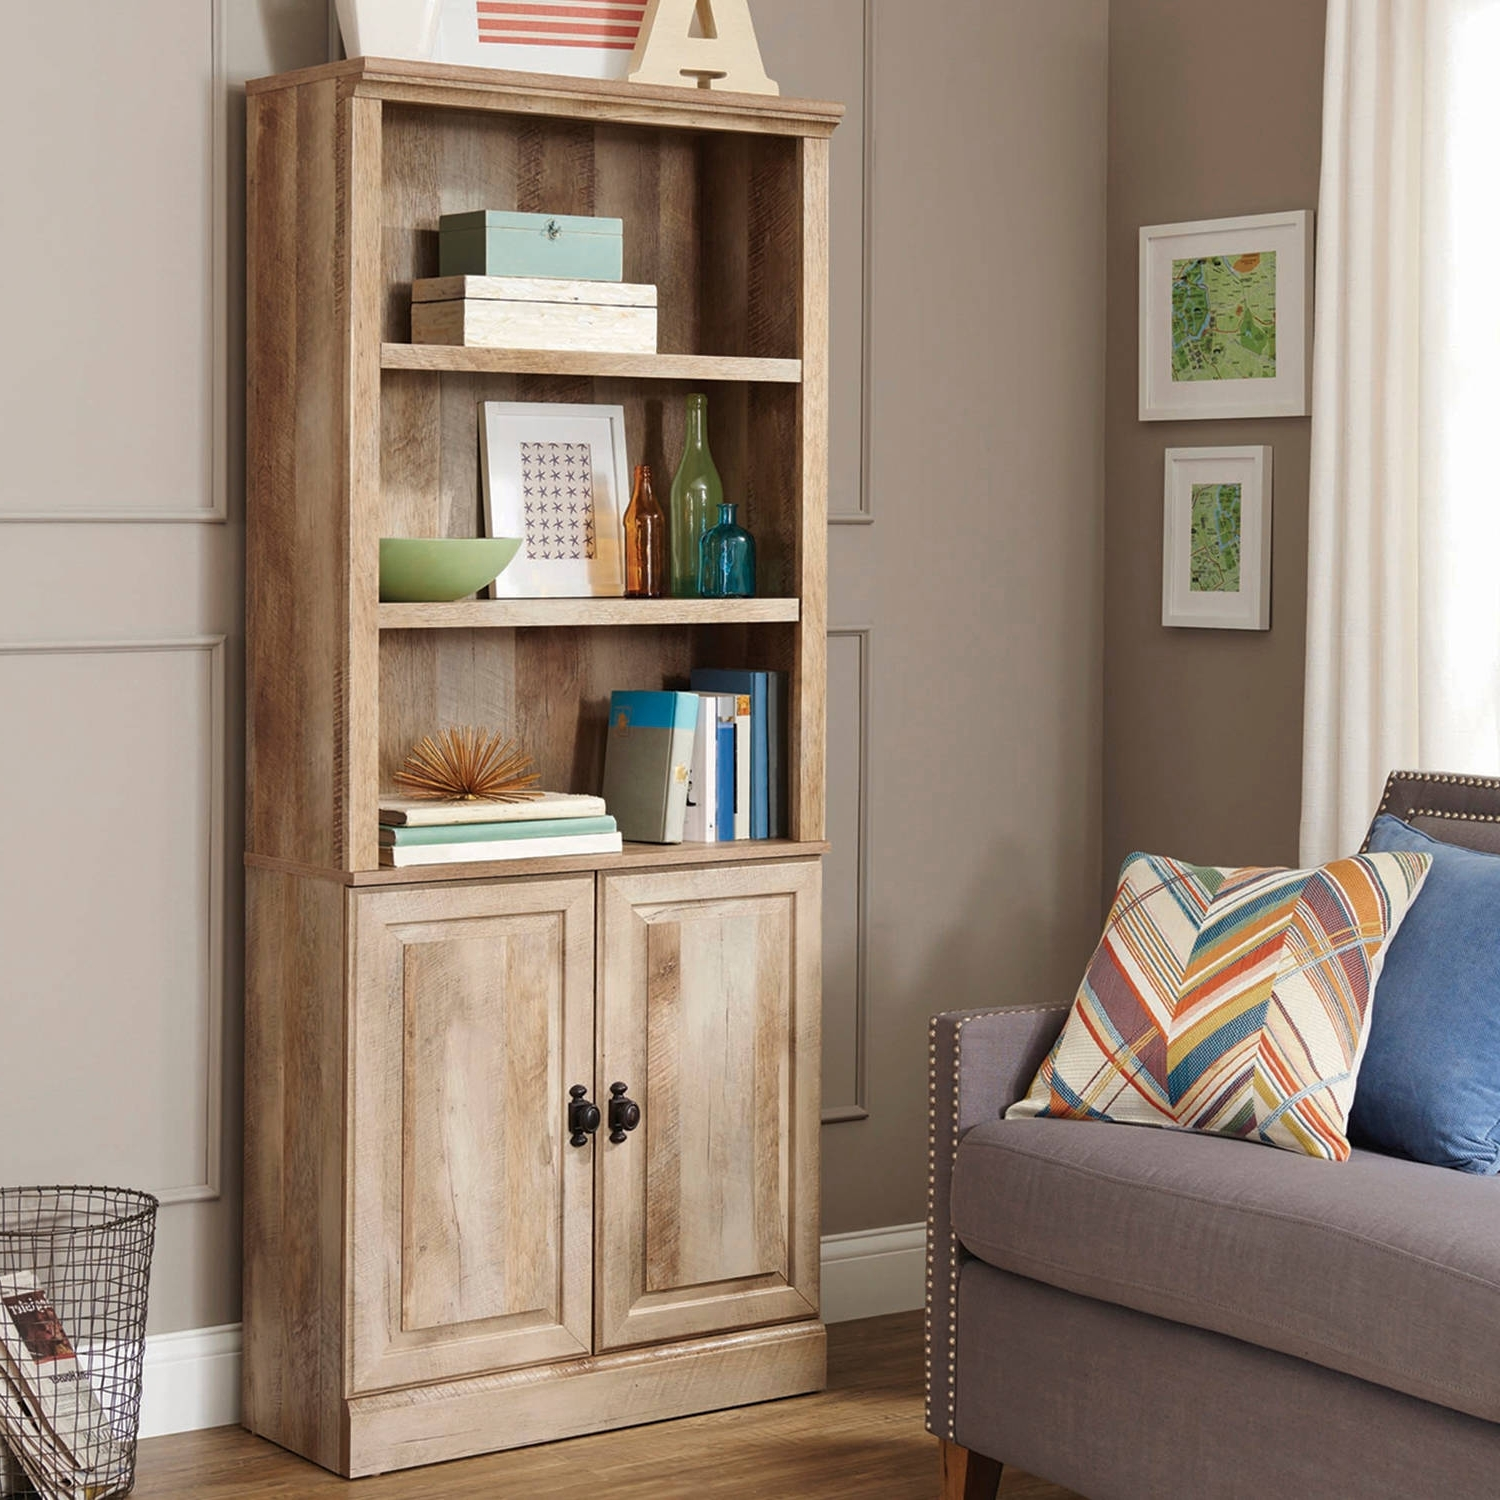 Walmart Bookcases With Well Known Better Homes And Gardens Crossmill Bookcase With Doors, Set Of  (View 15 of 15)